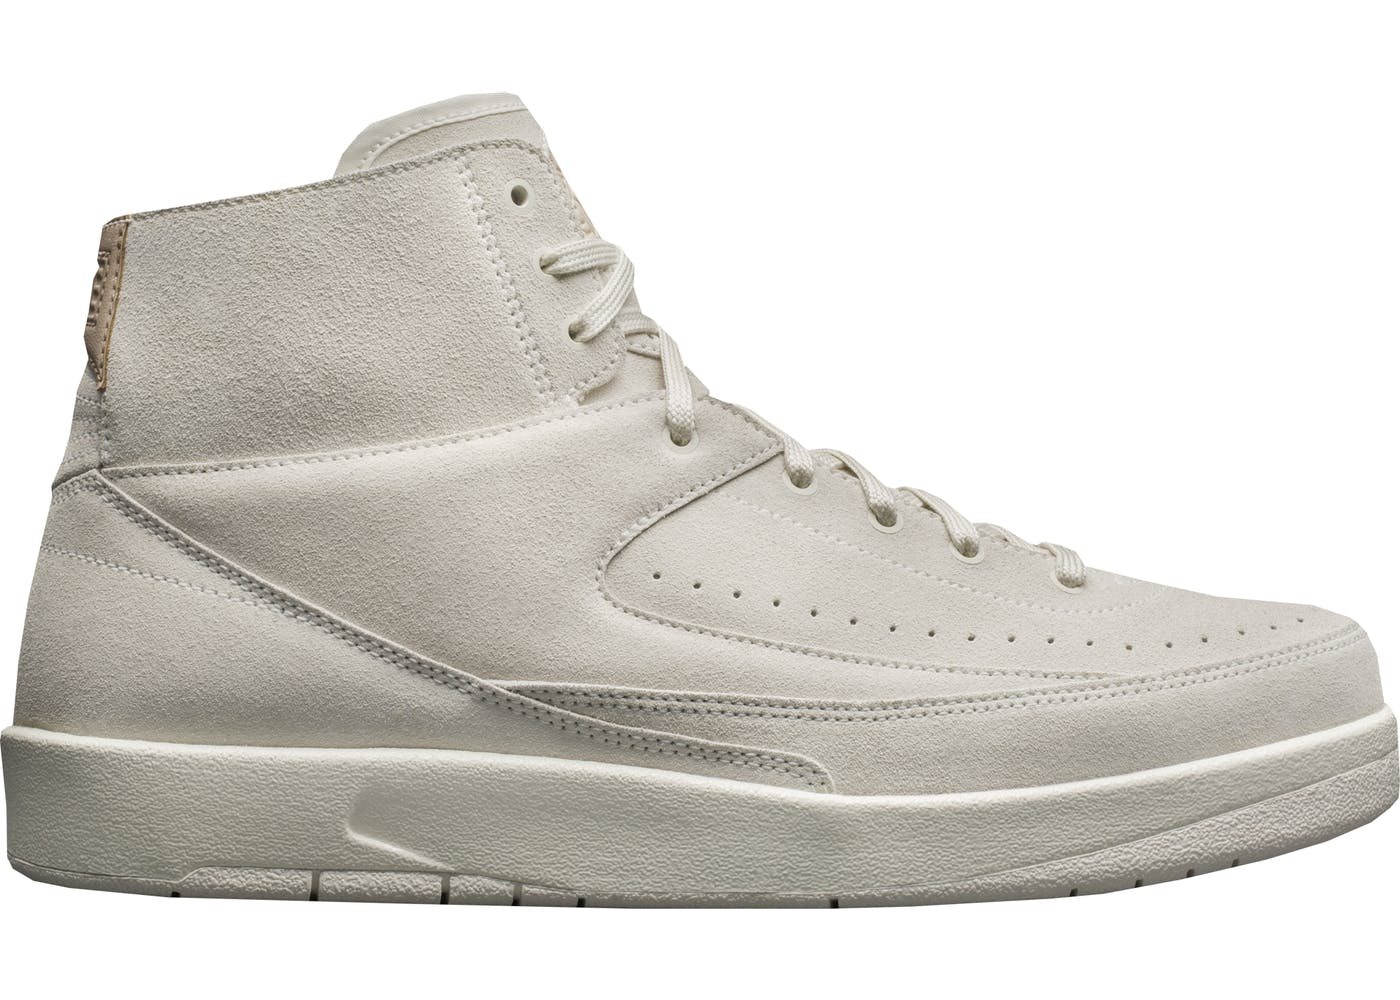 online retailer a212a c7f03 ... Air Jordan 2 Retro Decon Sail